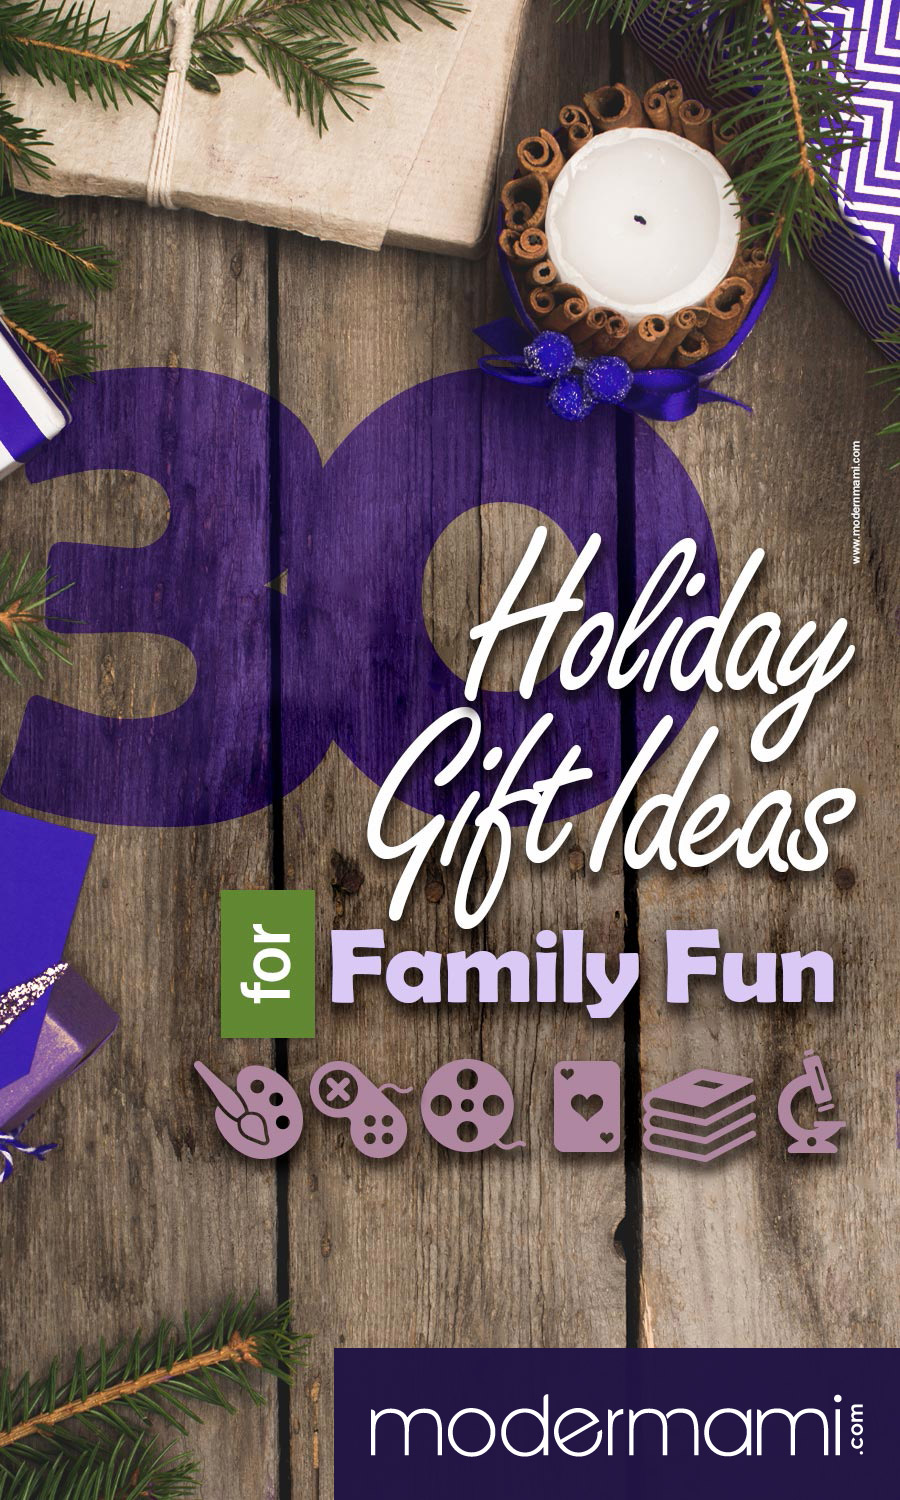 Holiday Gift Ideas for Family Fun